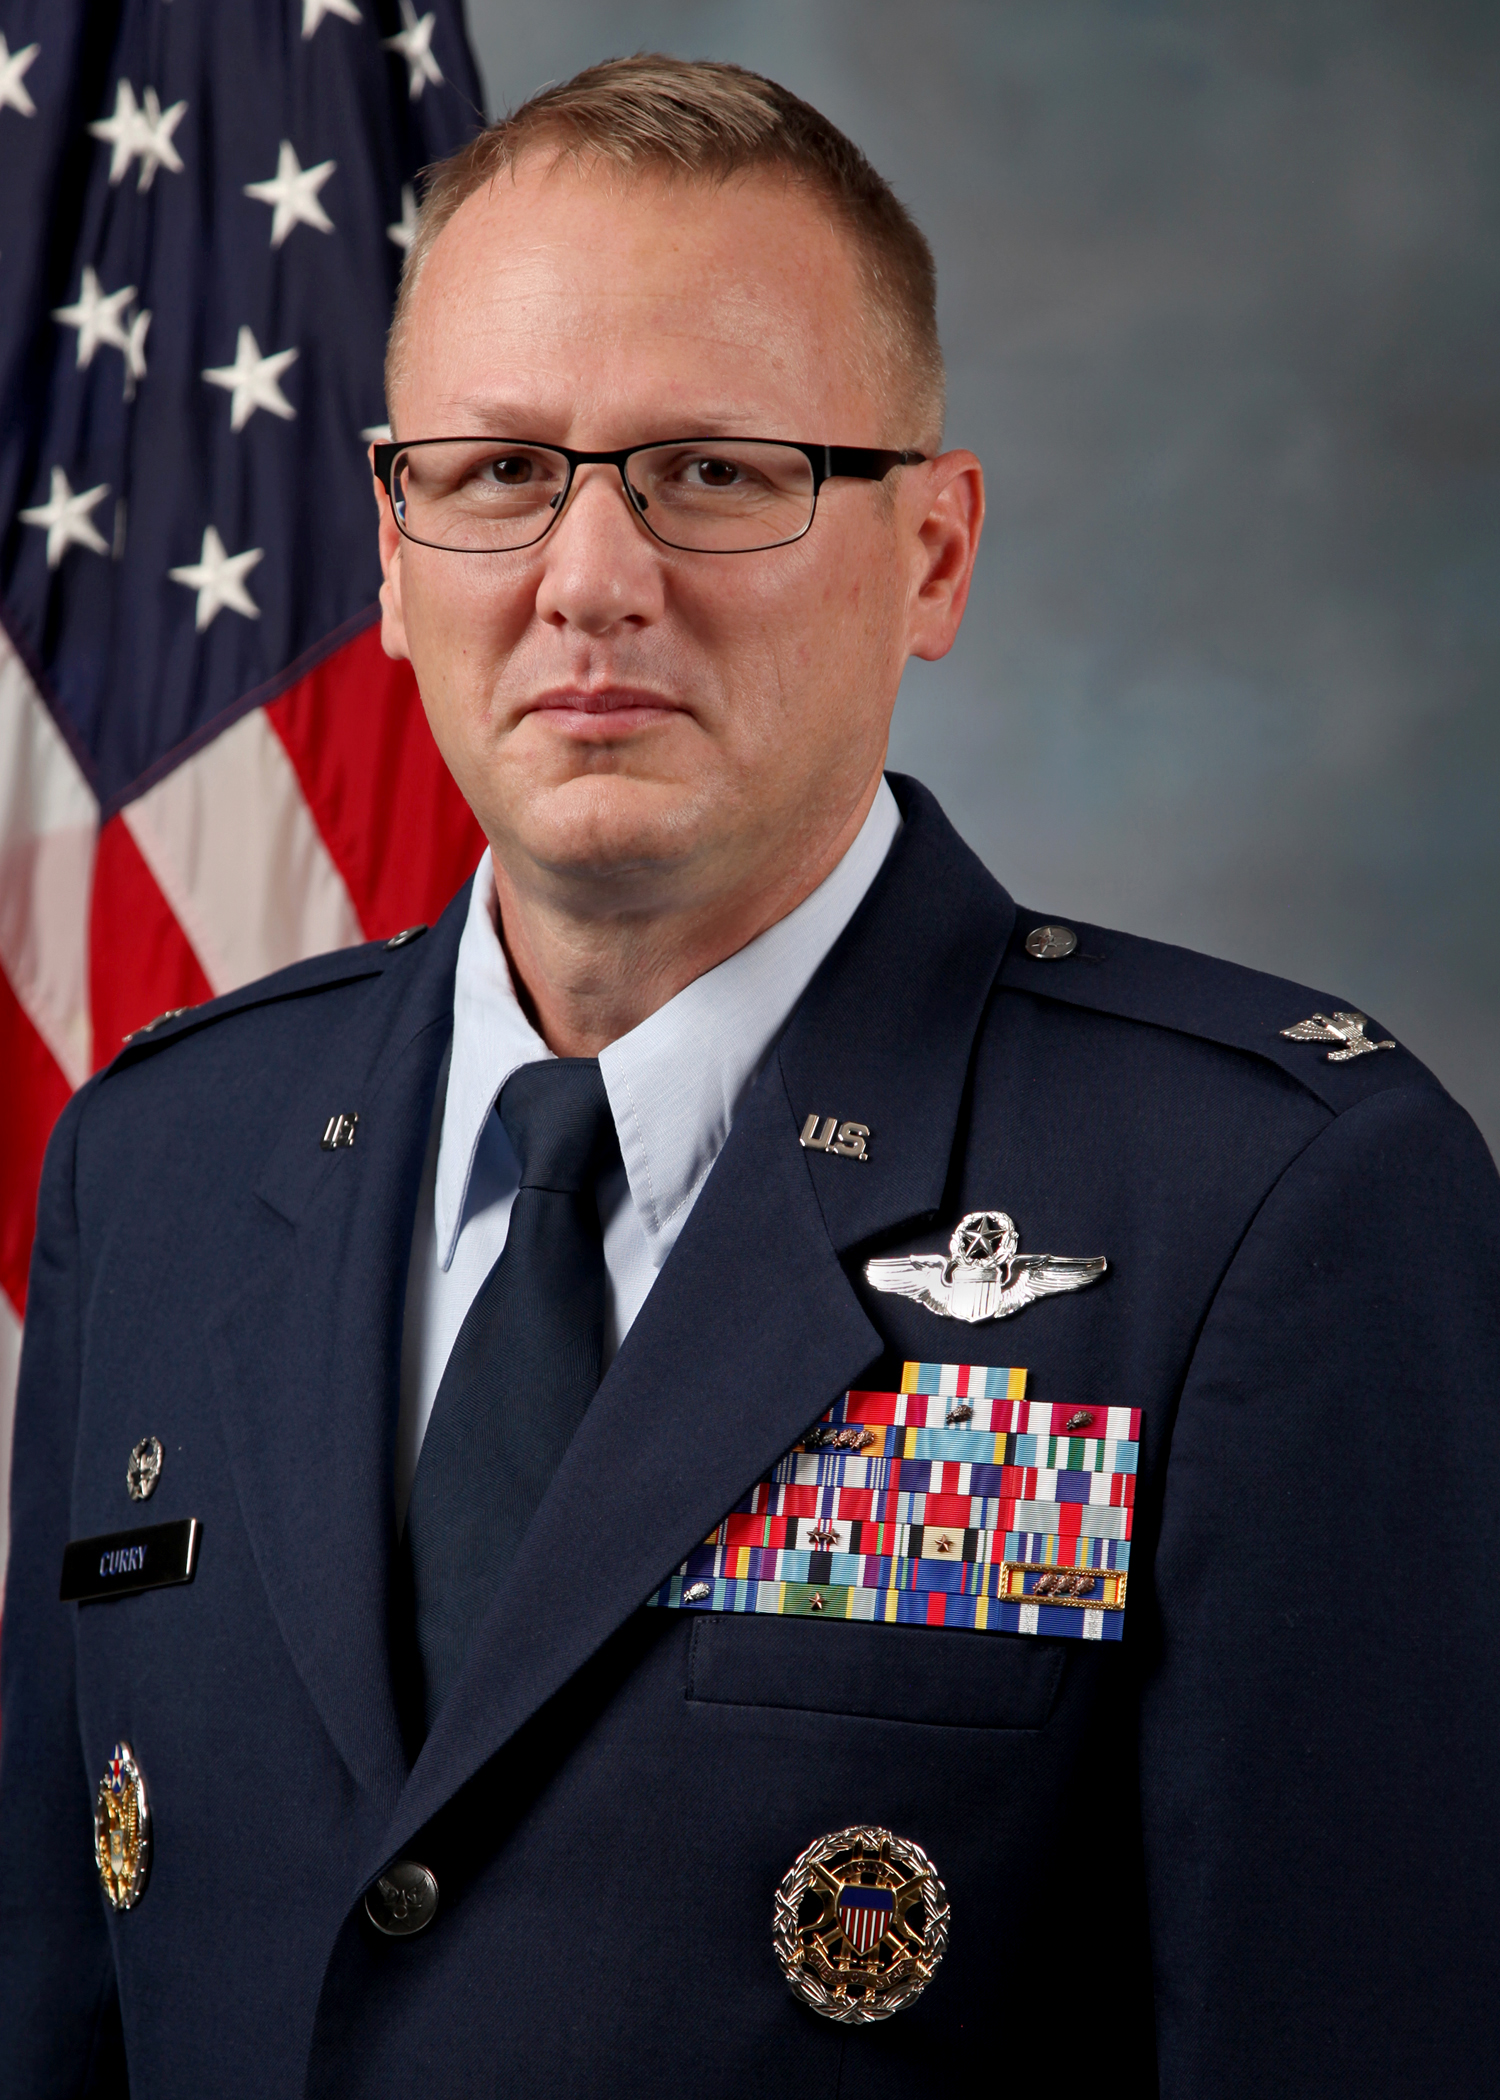 Portrait photo of Col. Curry